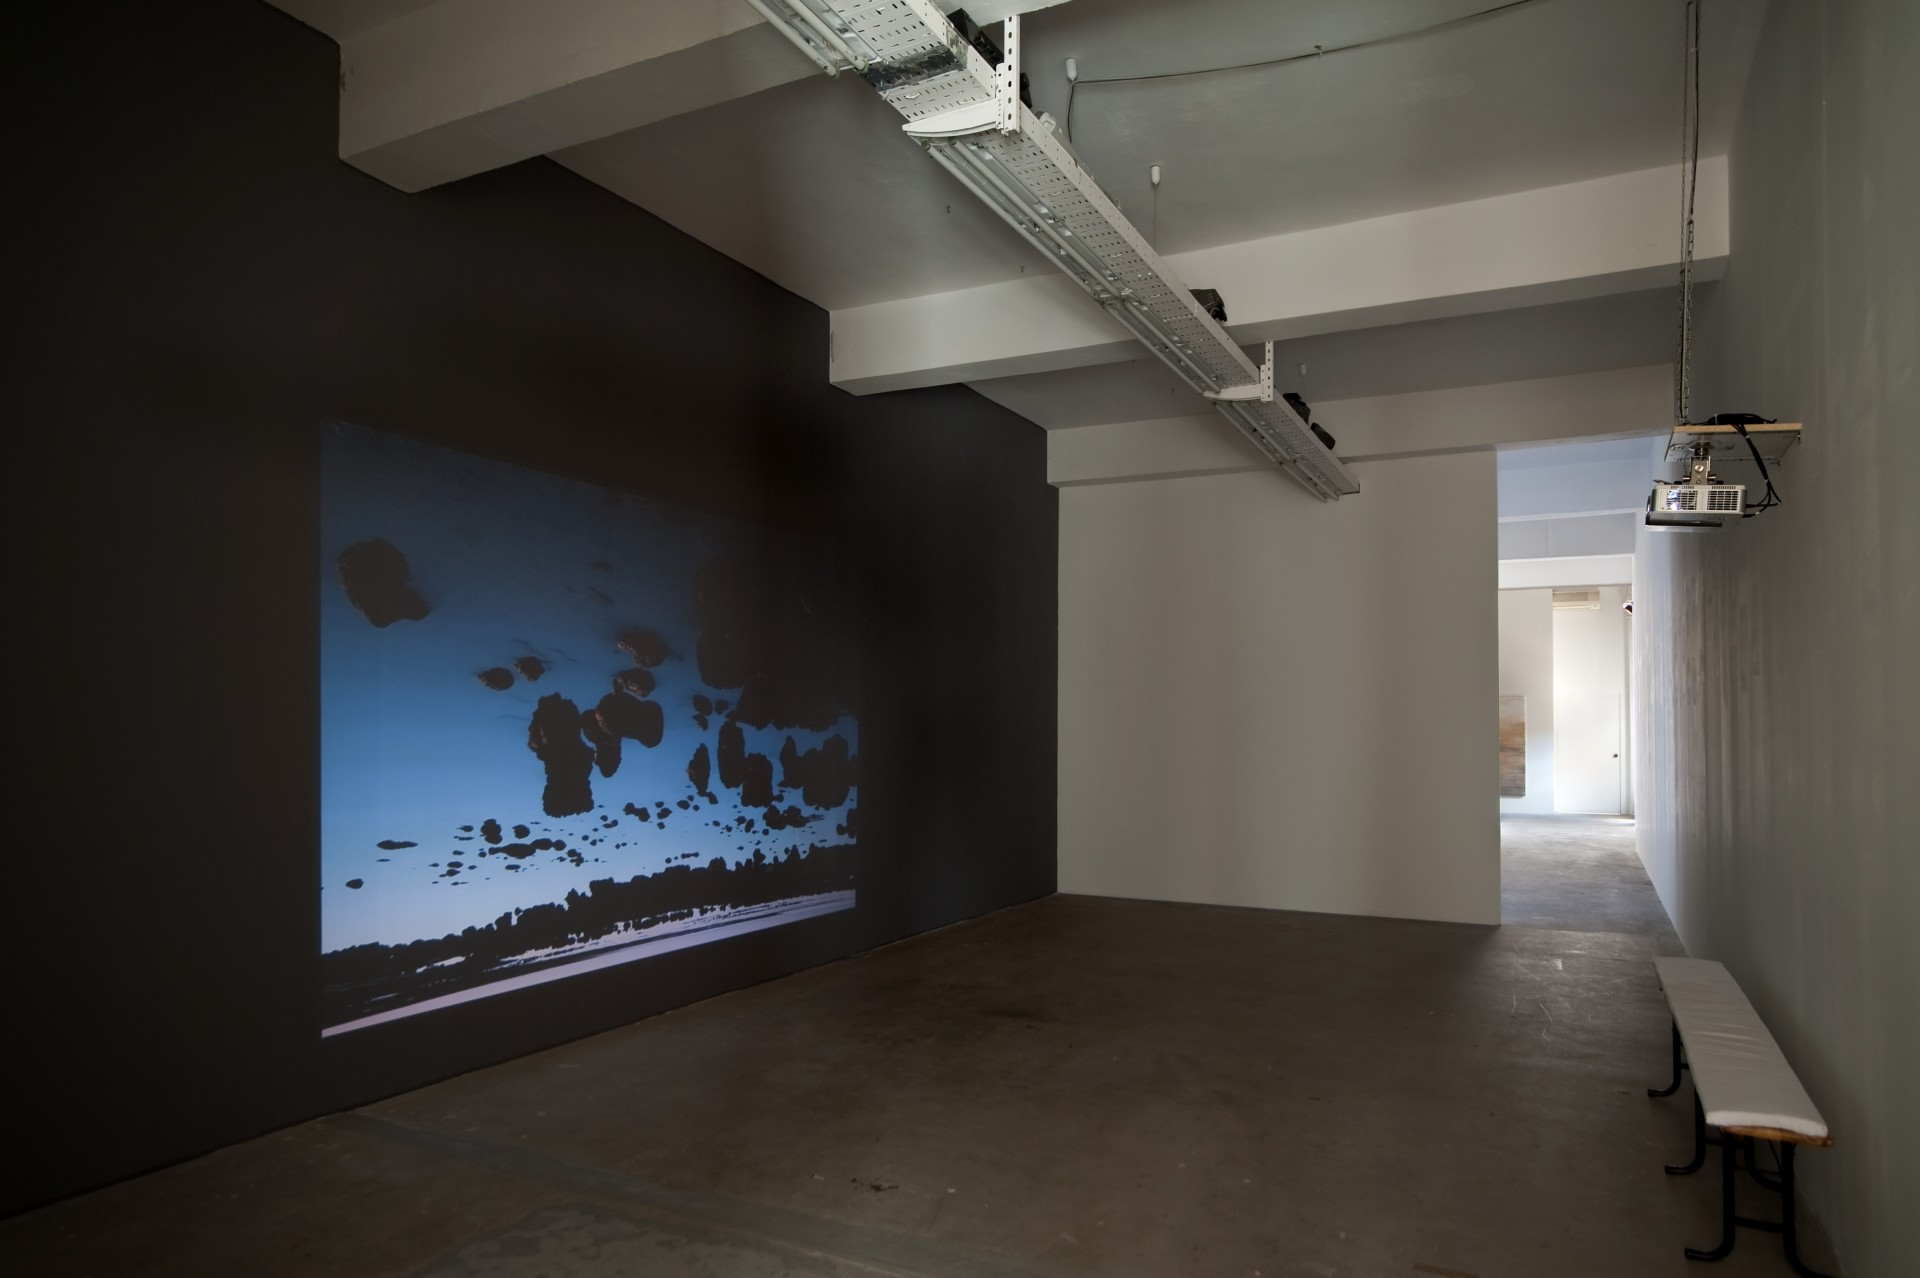 Thiago Rocha Pitta, <i>Prima dell'alba</i>, 2016, 12′ video still, installation view. Courtesy of the artist and Gluck50. Ph. Raph Meazza